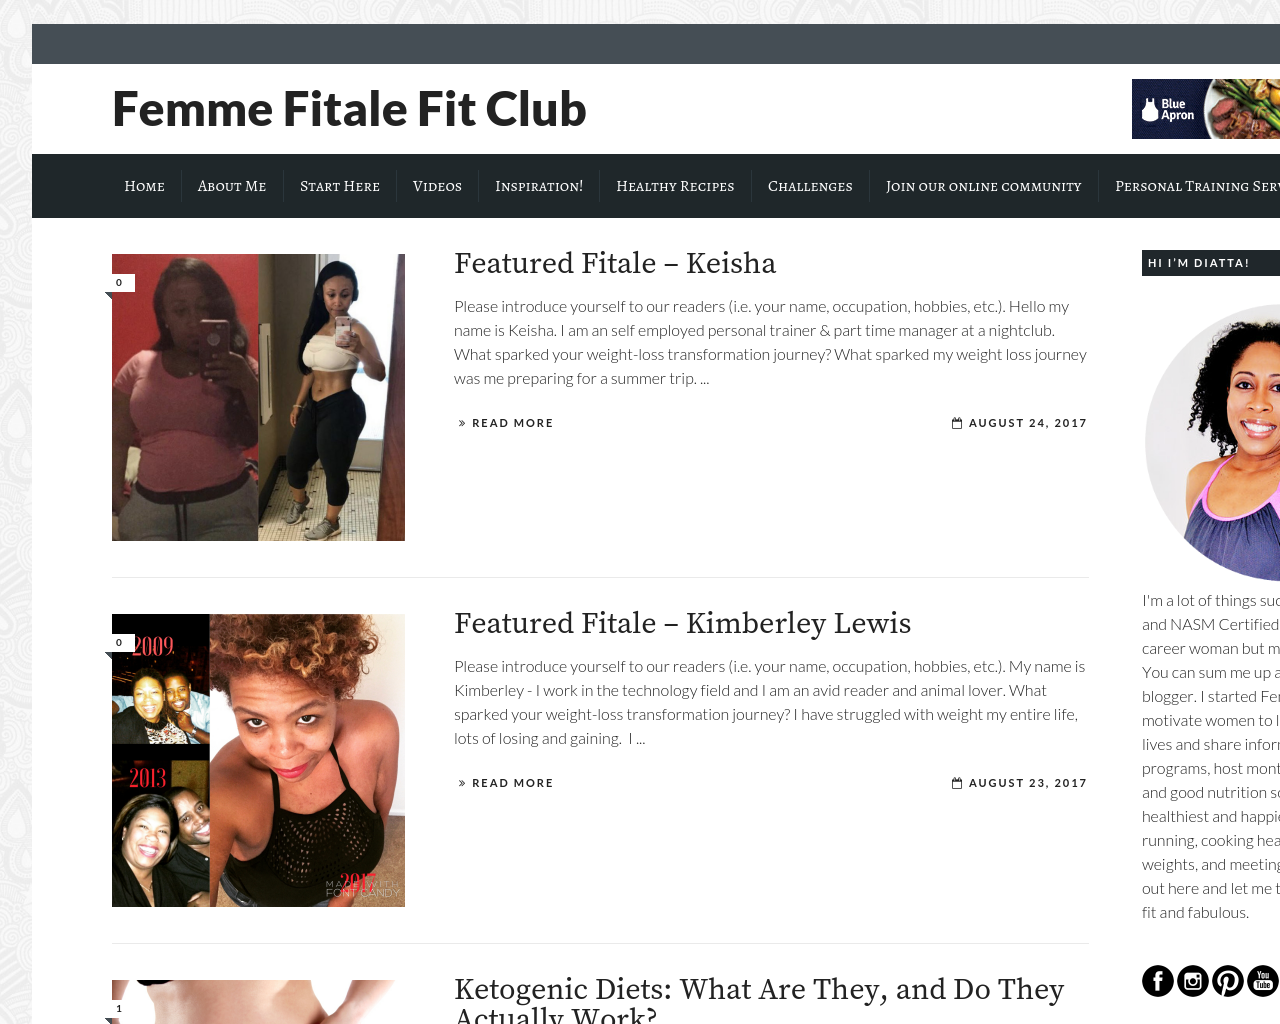 Femme-Fitale-Fit-Club-Advertising-Reviews-Pricing